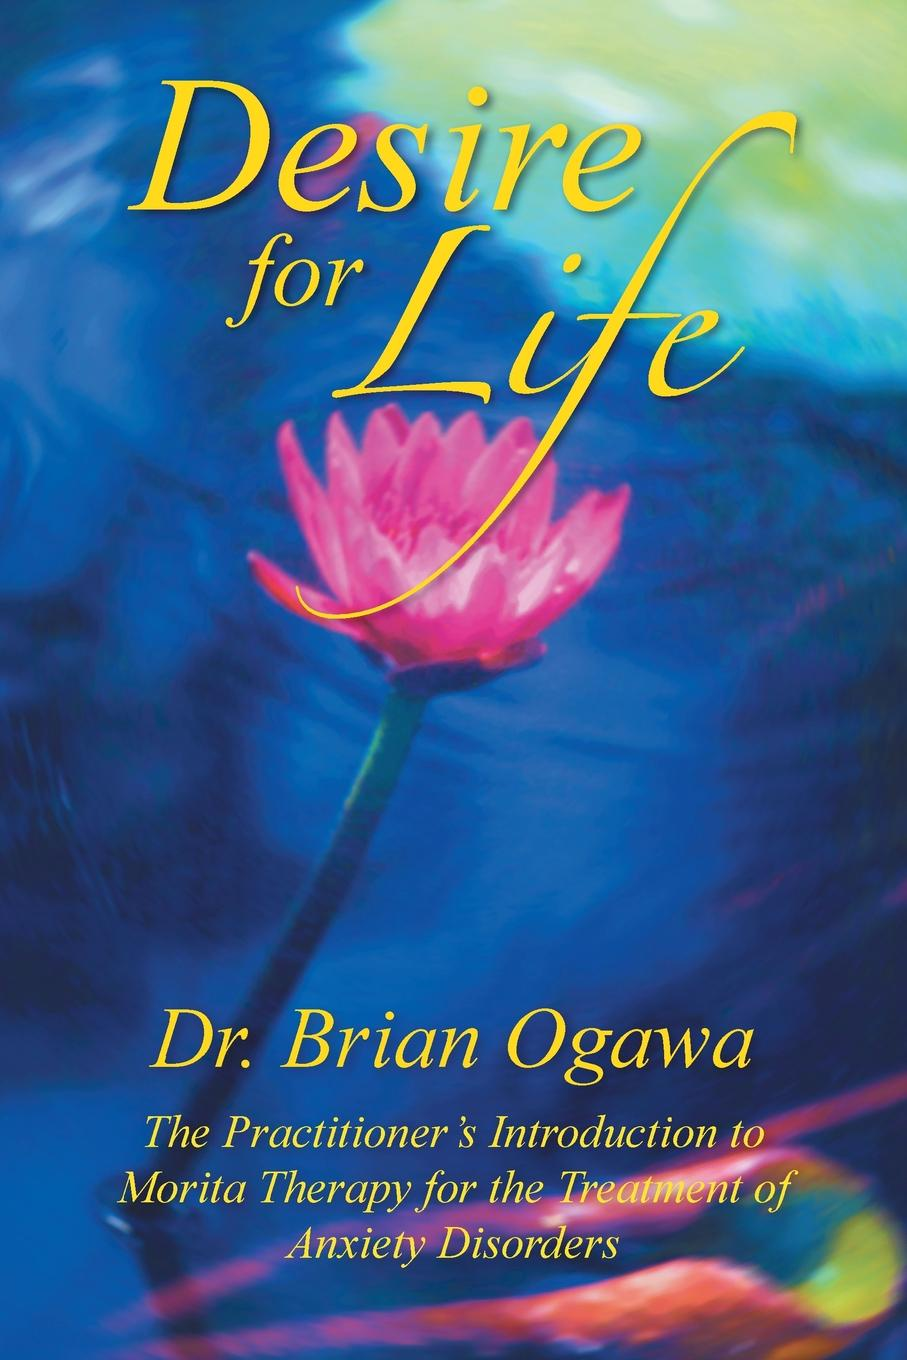 Brian Ogawa Desire for Life. The Practitioner's Introduction to Morita Therapy brian ogawa a river to live by the 12 life principles of morita therapy